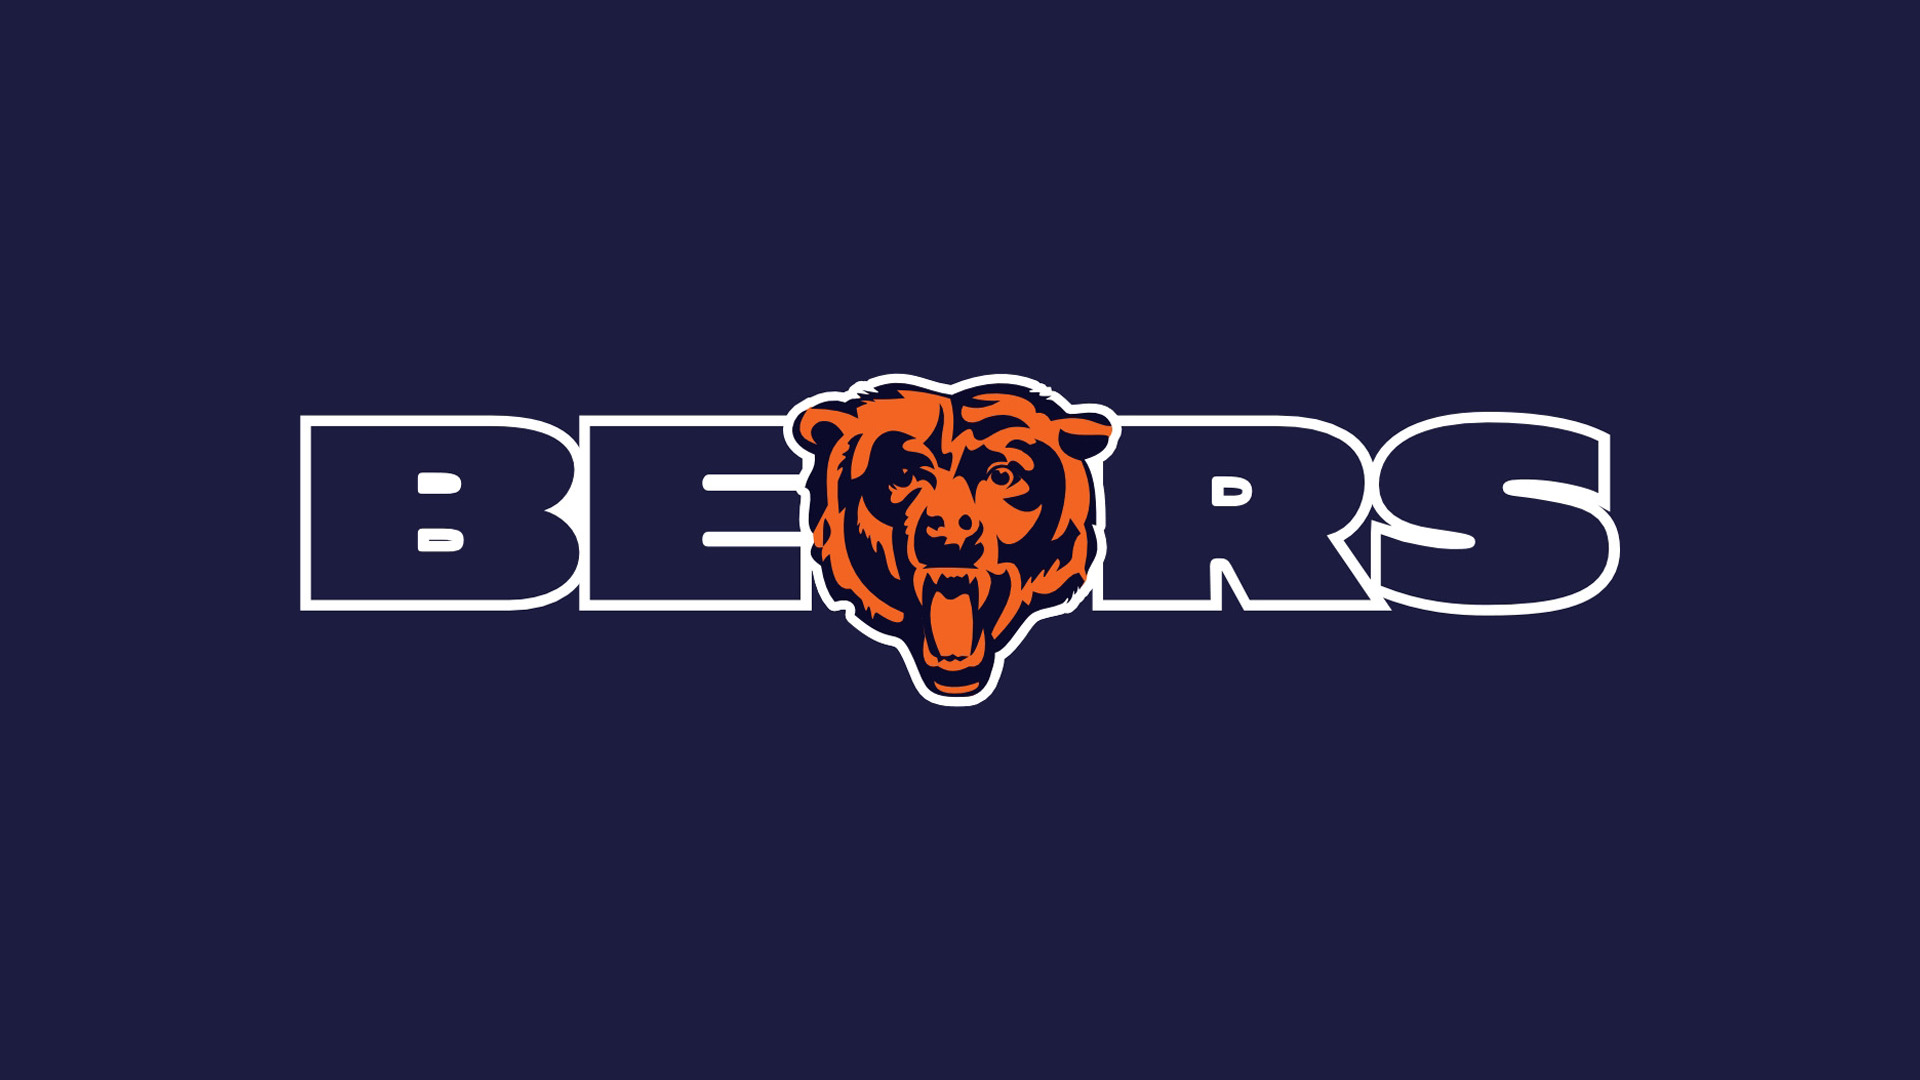 chicago-bears-club.jpg